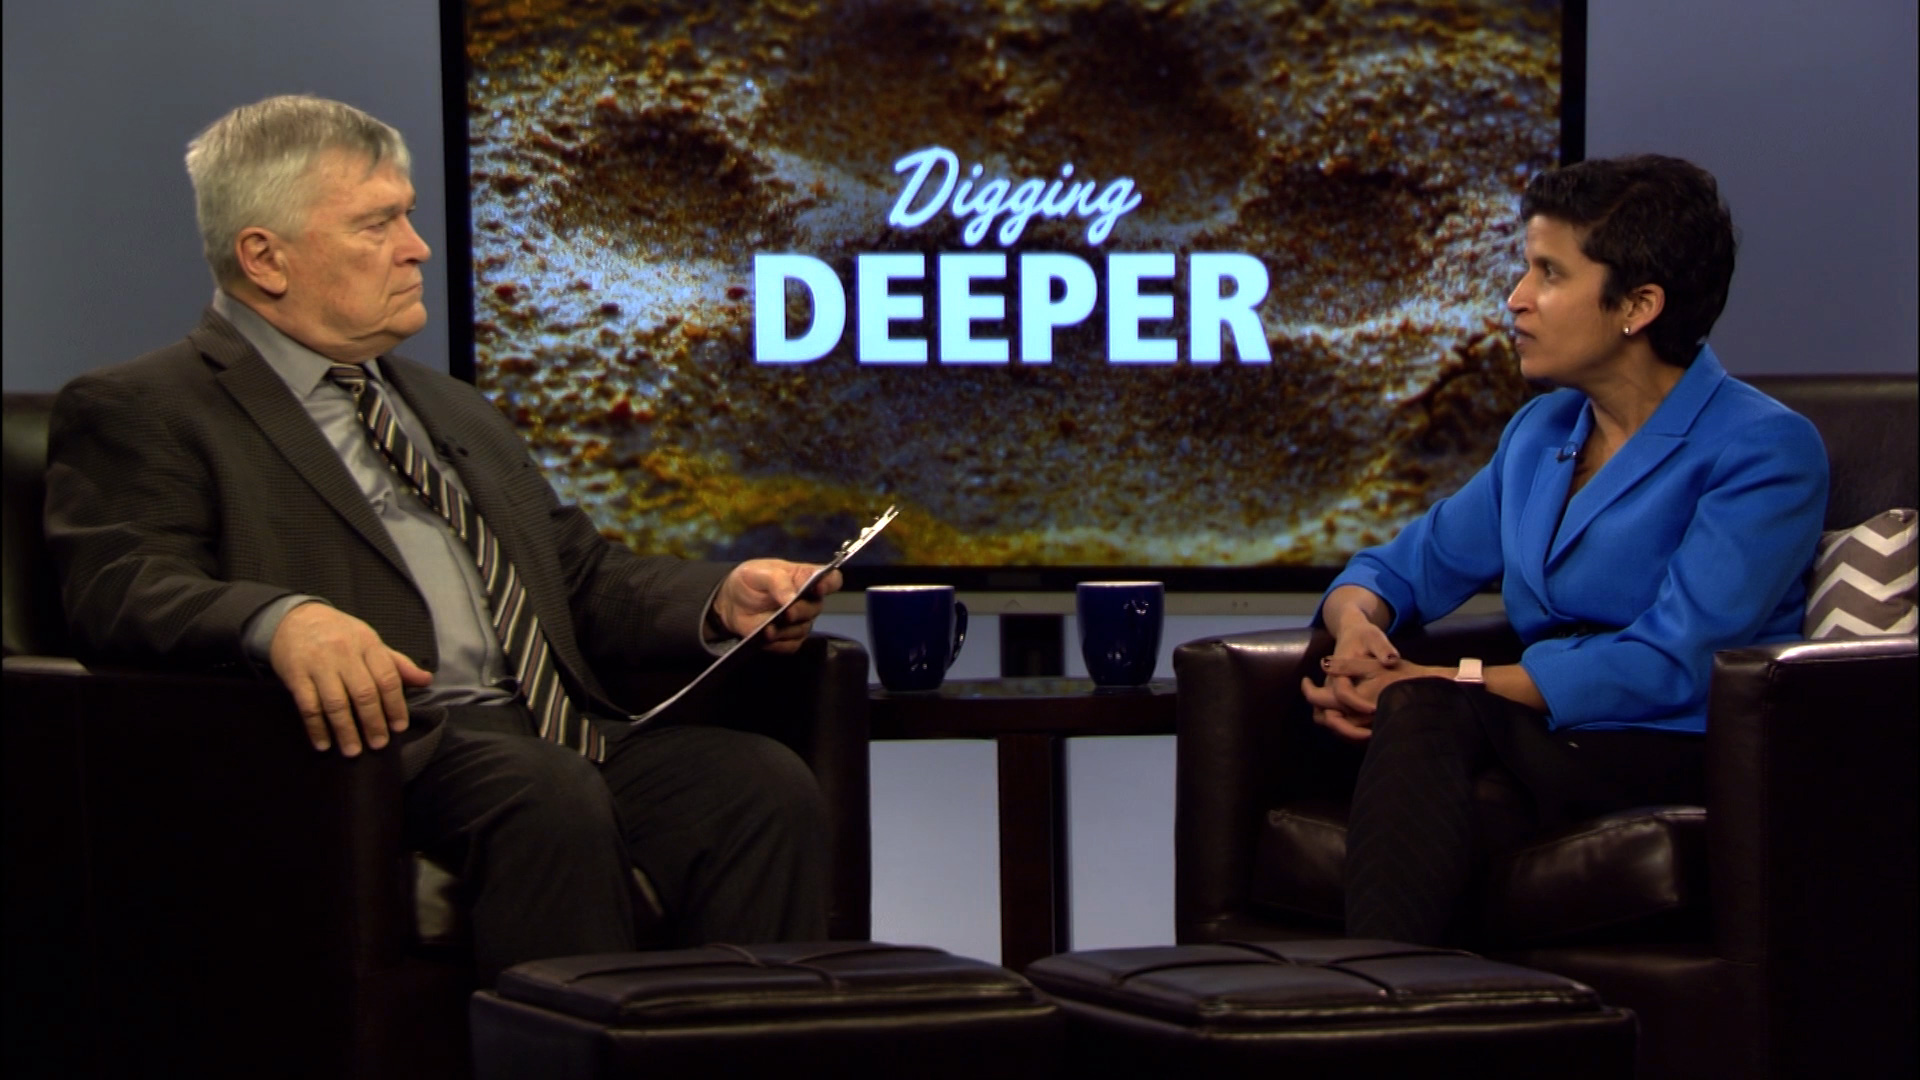 Eric Barrona and Shoba Sivaprasad on the set of Digging Deeper